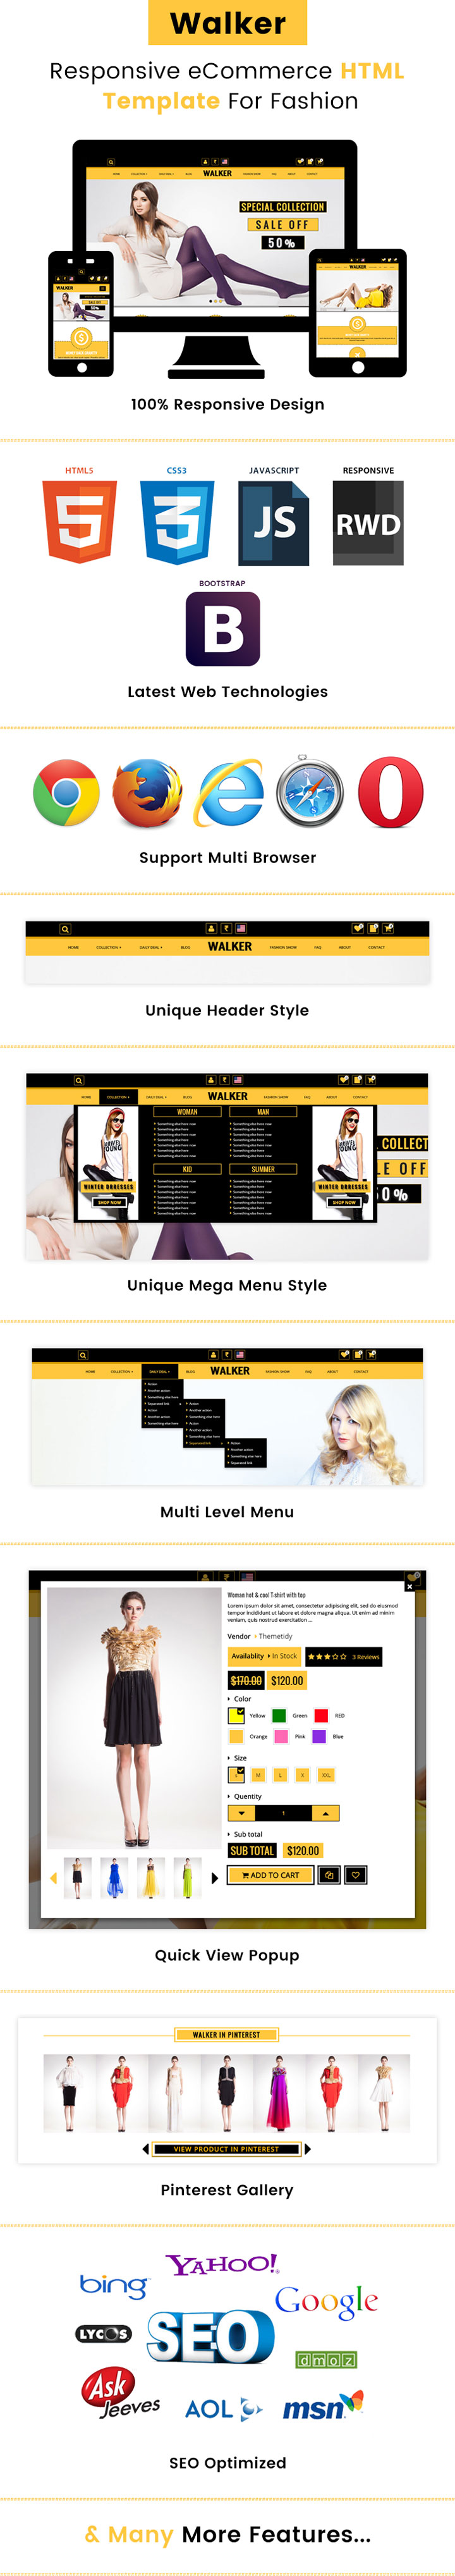 themetidy-Walker-Responsive-eCommerce-HTML-Template-For-Fashion-feature-list-image